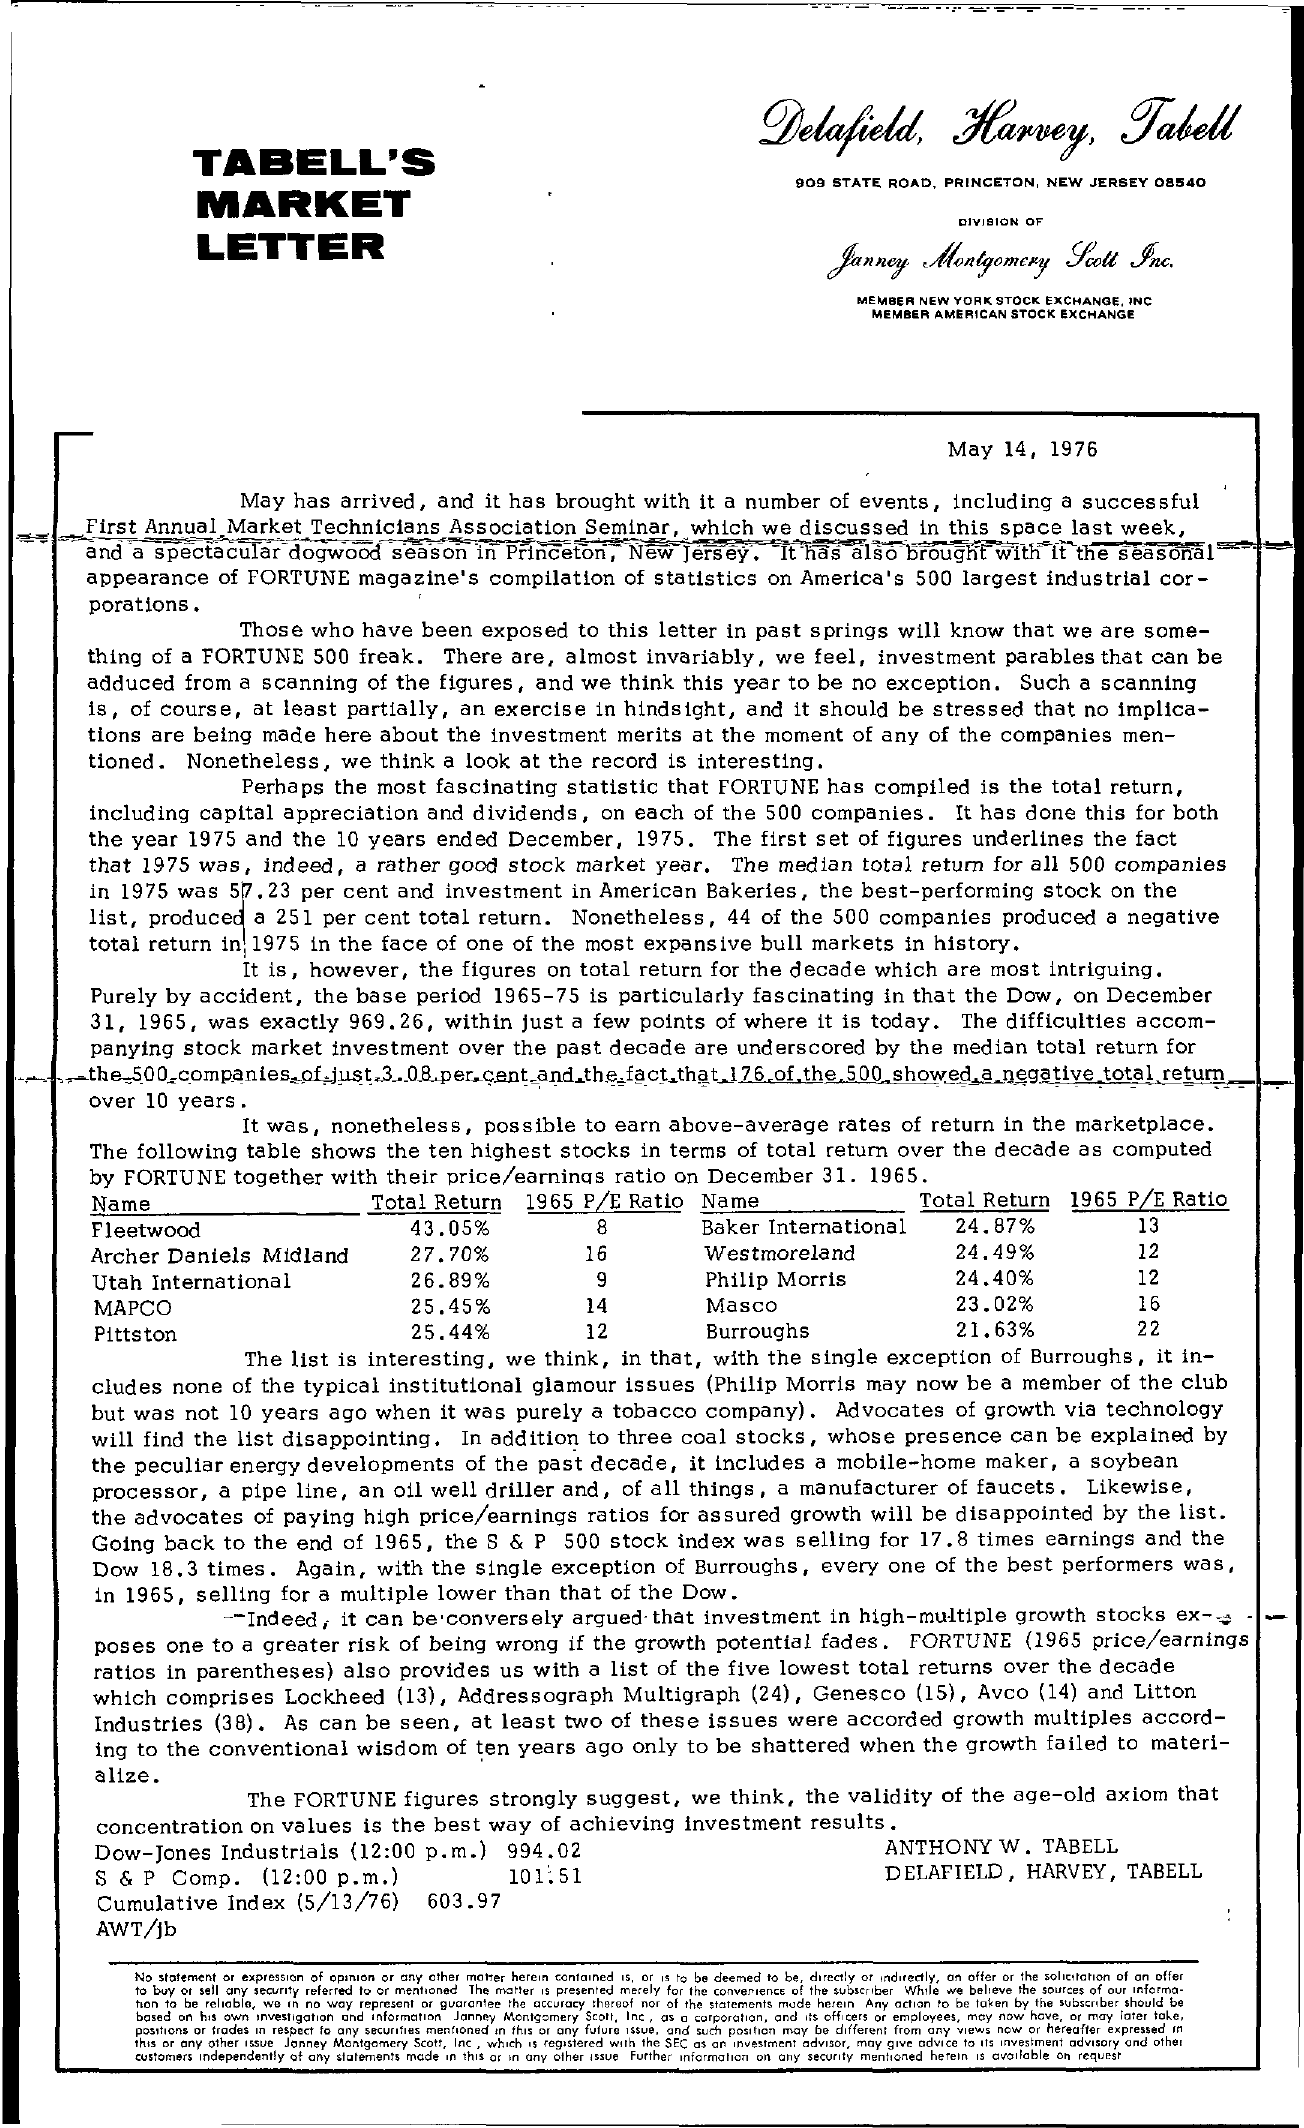 Tabell's Market Letter - May 14, 1976